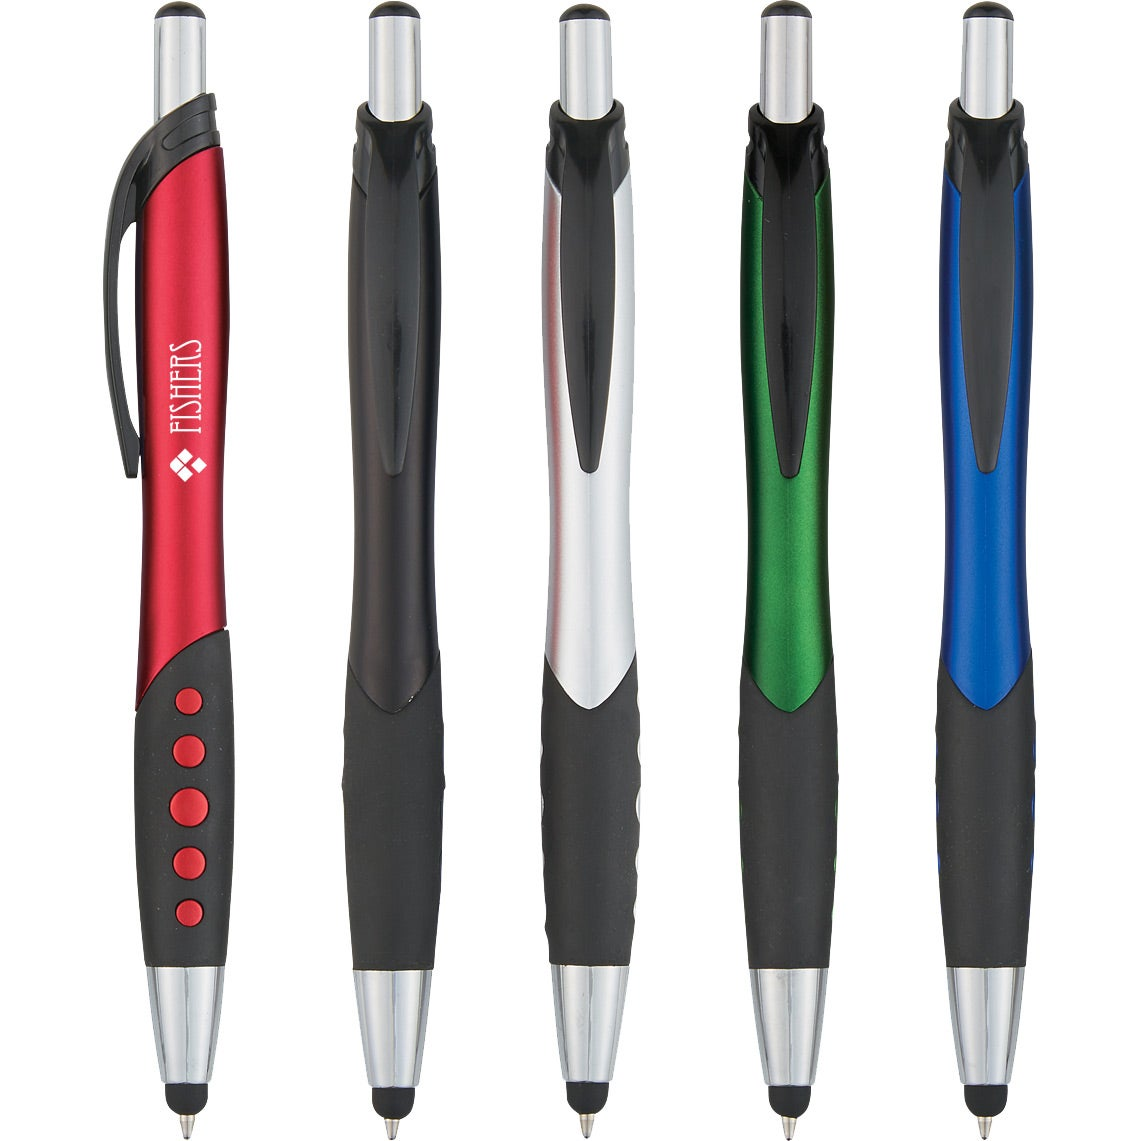 Dotted Grip Stylus Pen